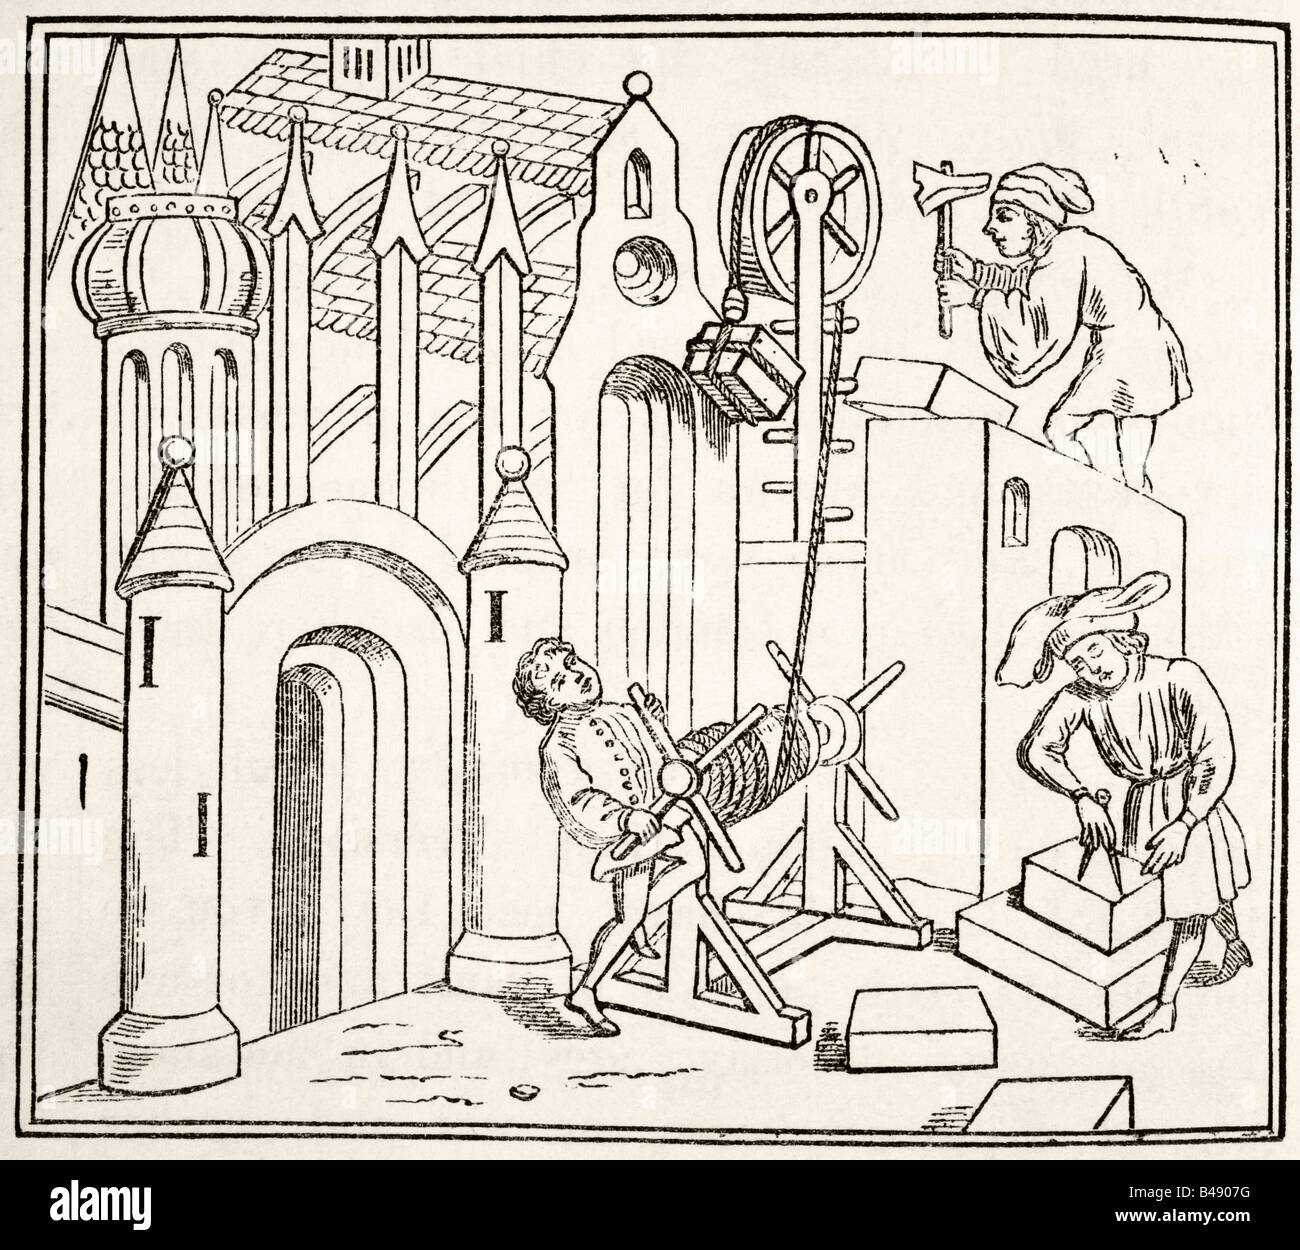 Builders at work in the 15th century. - Stock Image